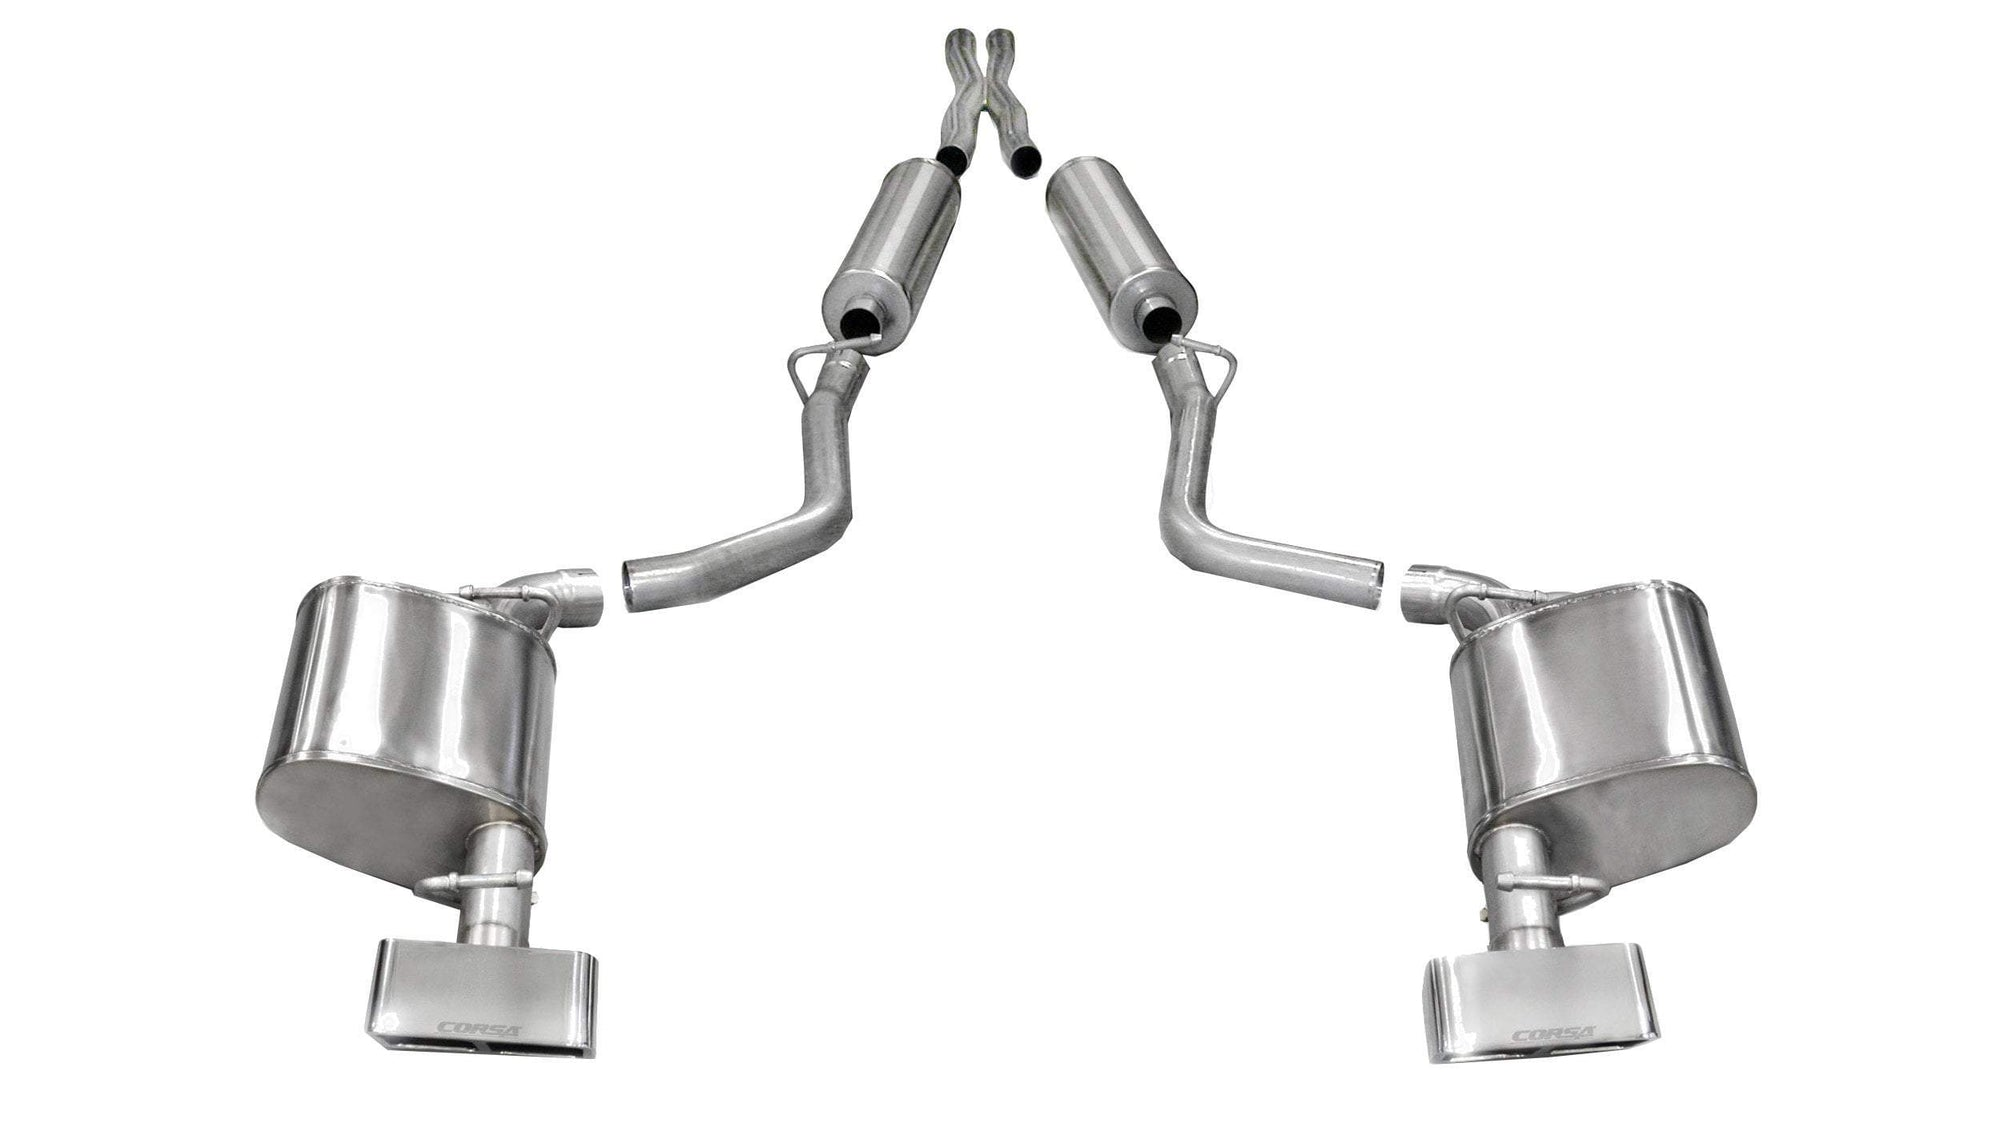 "CORSA PERFORMANCE Cat-Back Exhaust Polished / Extreme / Dual Rear - GTX2 2011-2014 Dodge Challenger R/T, 5.7L V8, 2.5"" Dual Rear Exit Cat-Back Exhaust System with GTX2 Tips (14529) Xtreme Sound Level"